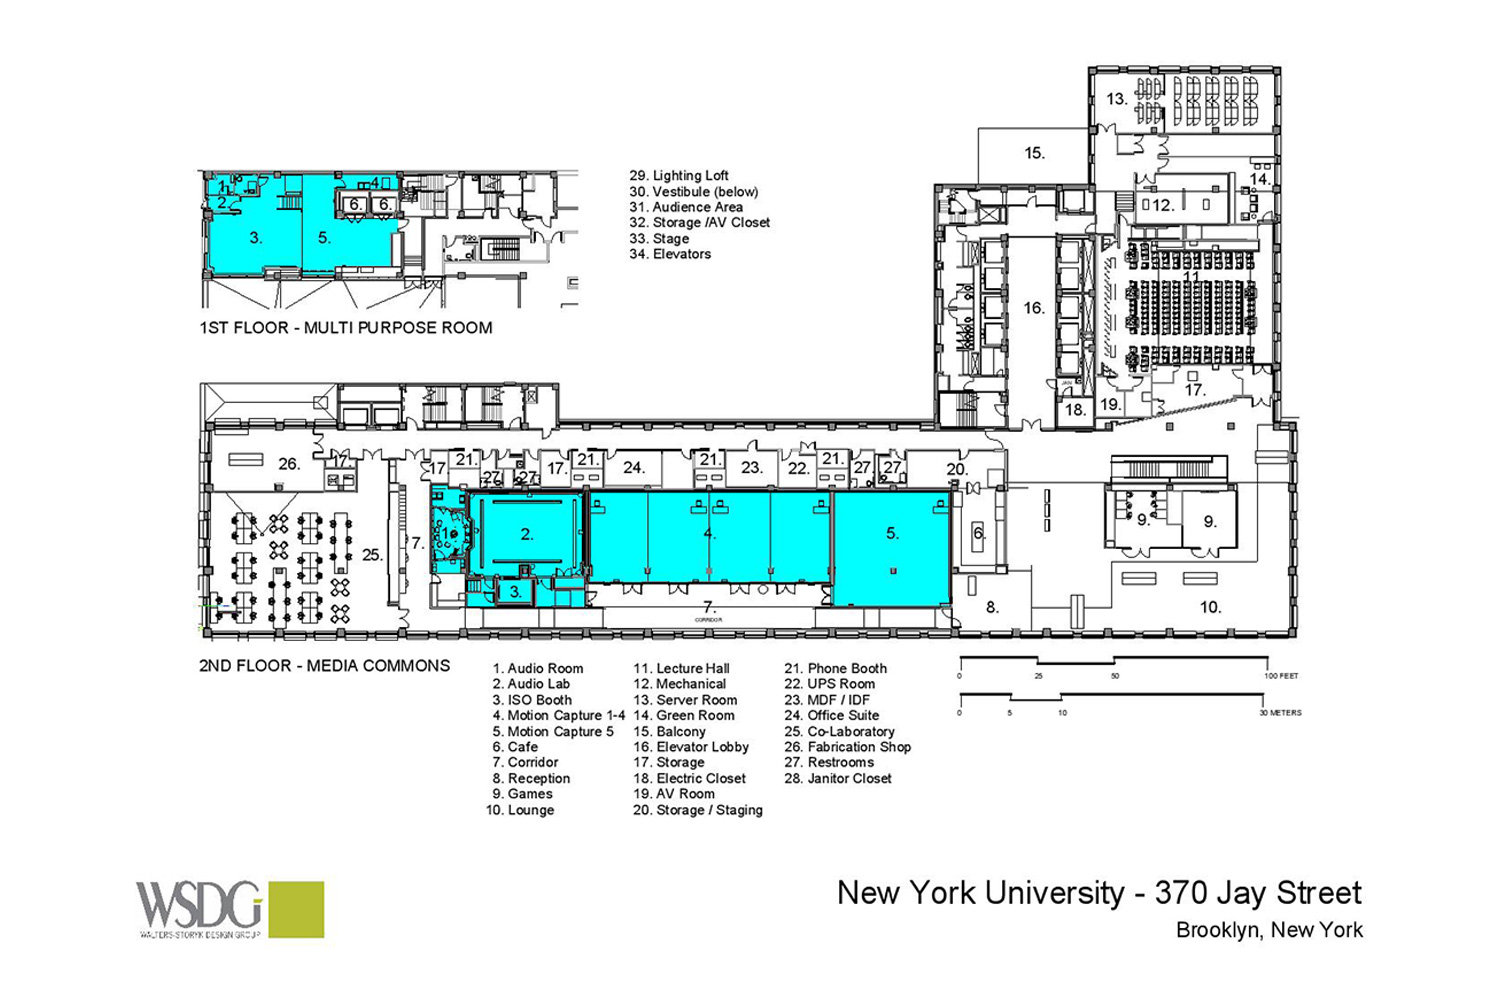 WSDG was engaged to design three key elements for th NYU Jay Street sustainable technology Center. Immersive audio lab, garage media and motion capture lab. Presentation drawing 1.